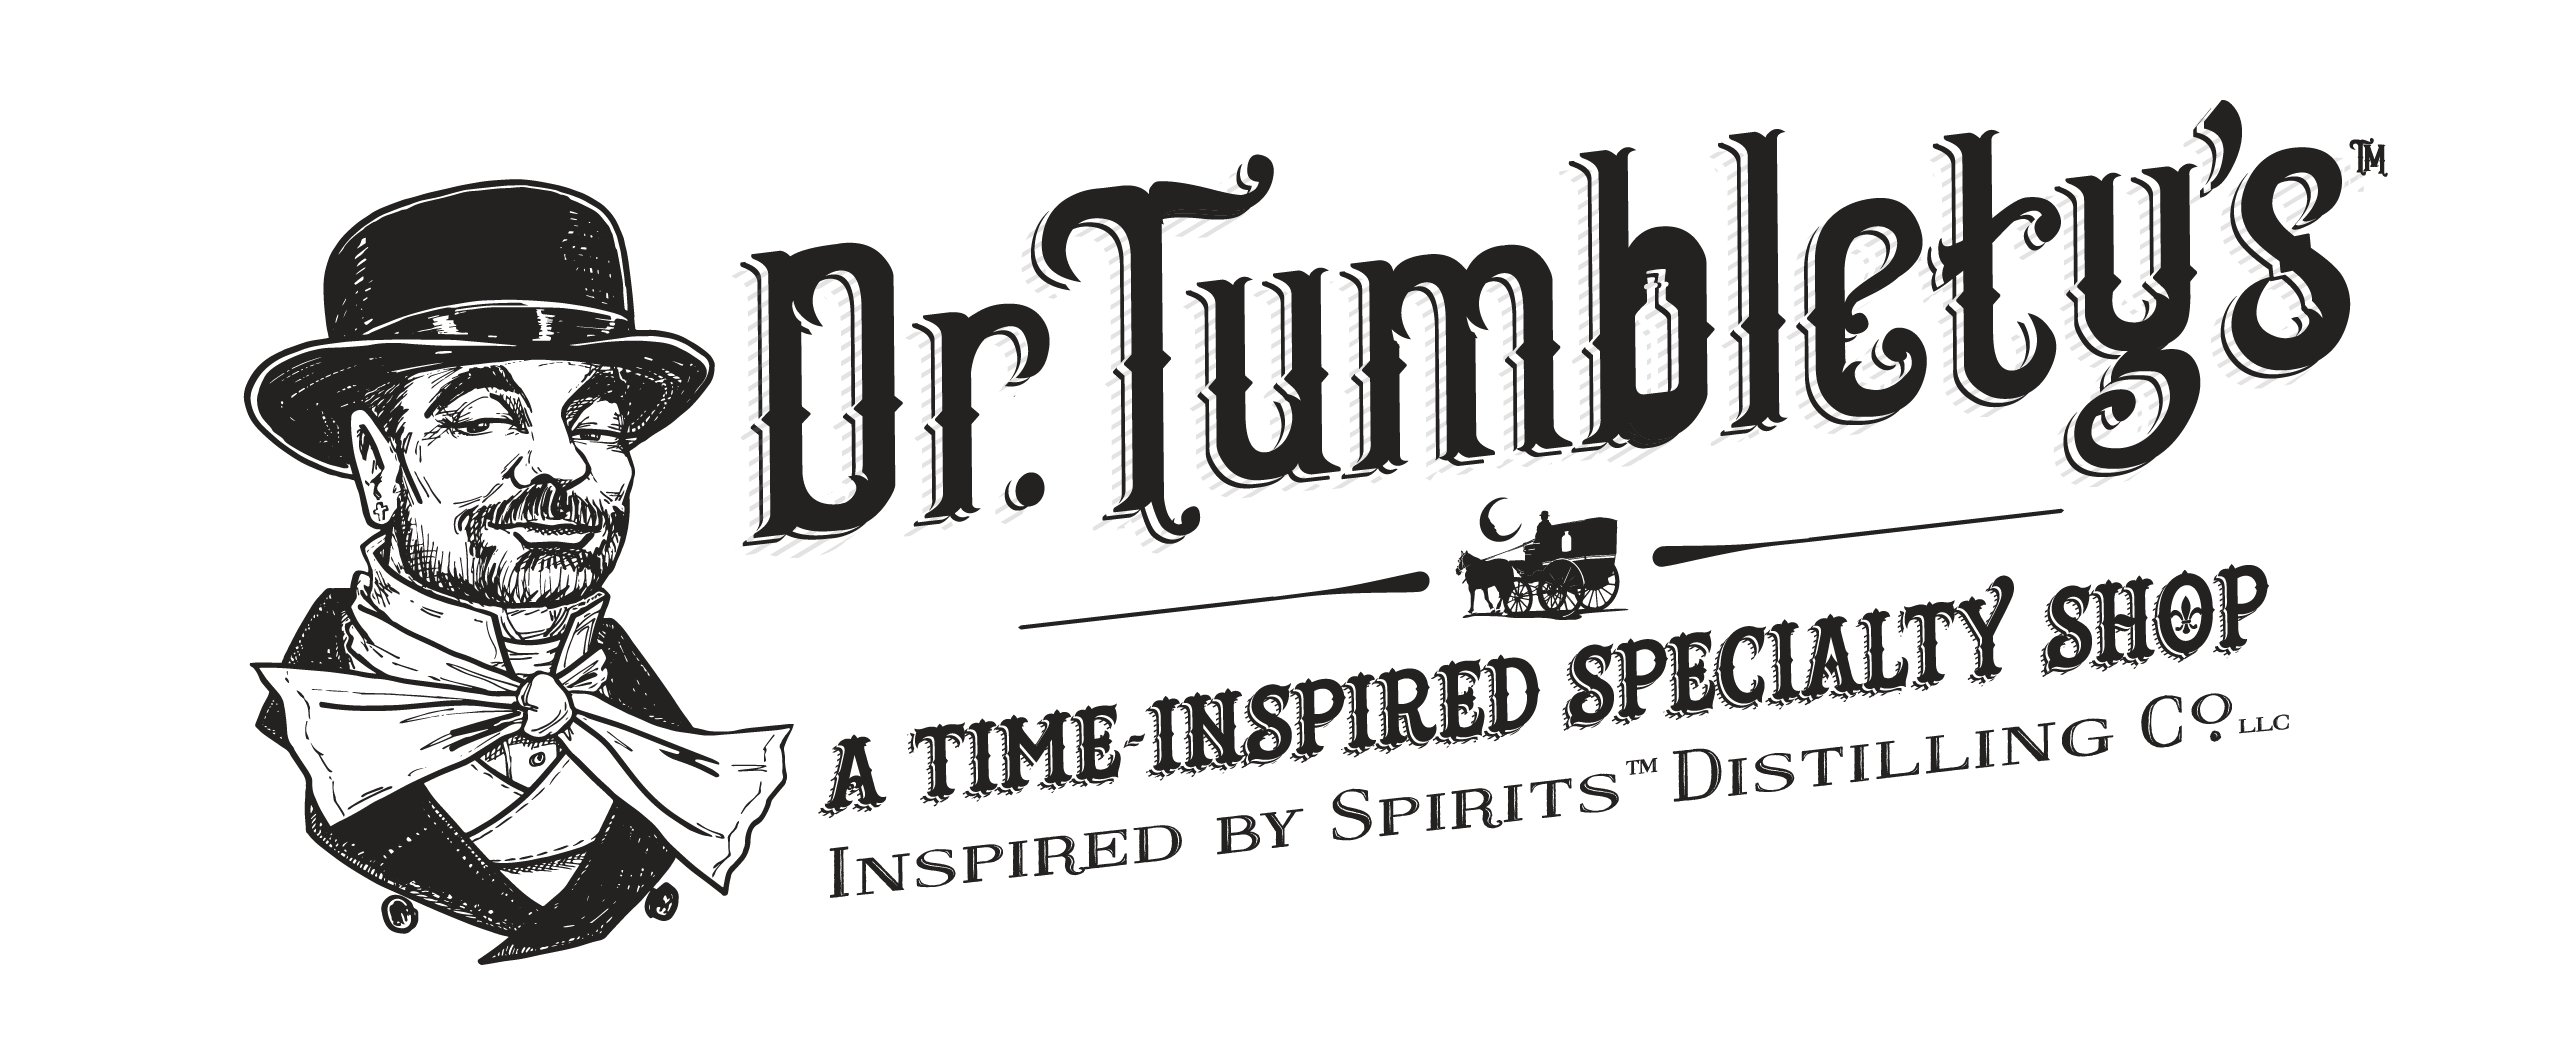 Dr. Tumblety's | A Time-Inspired Specialty Shop Logo